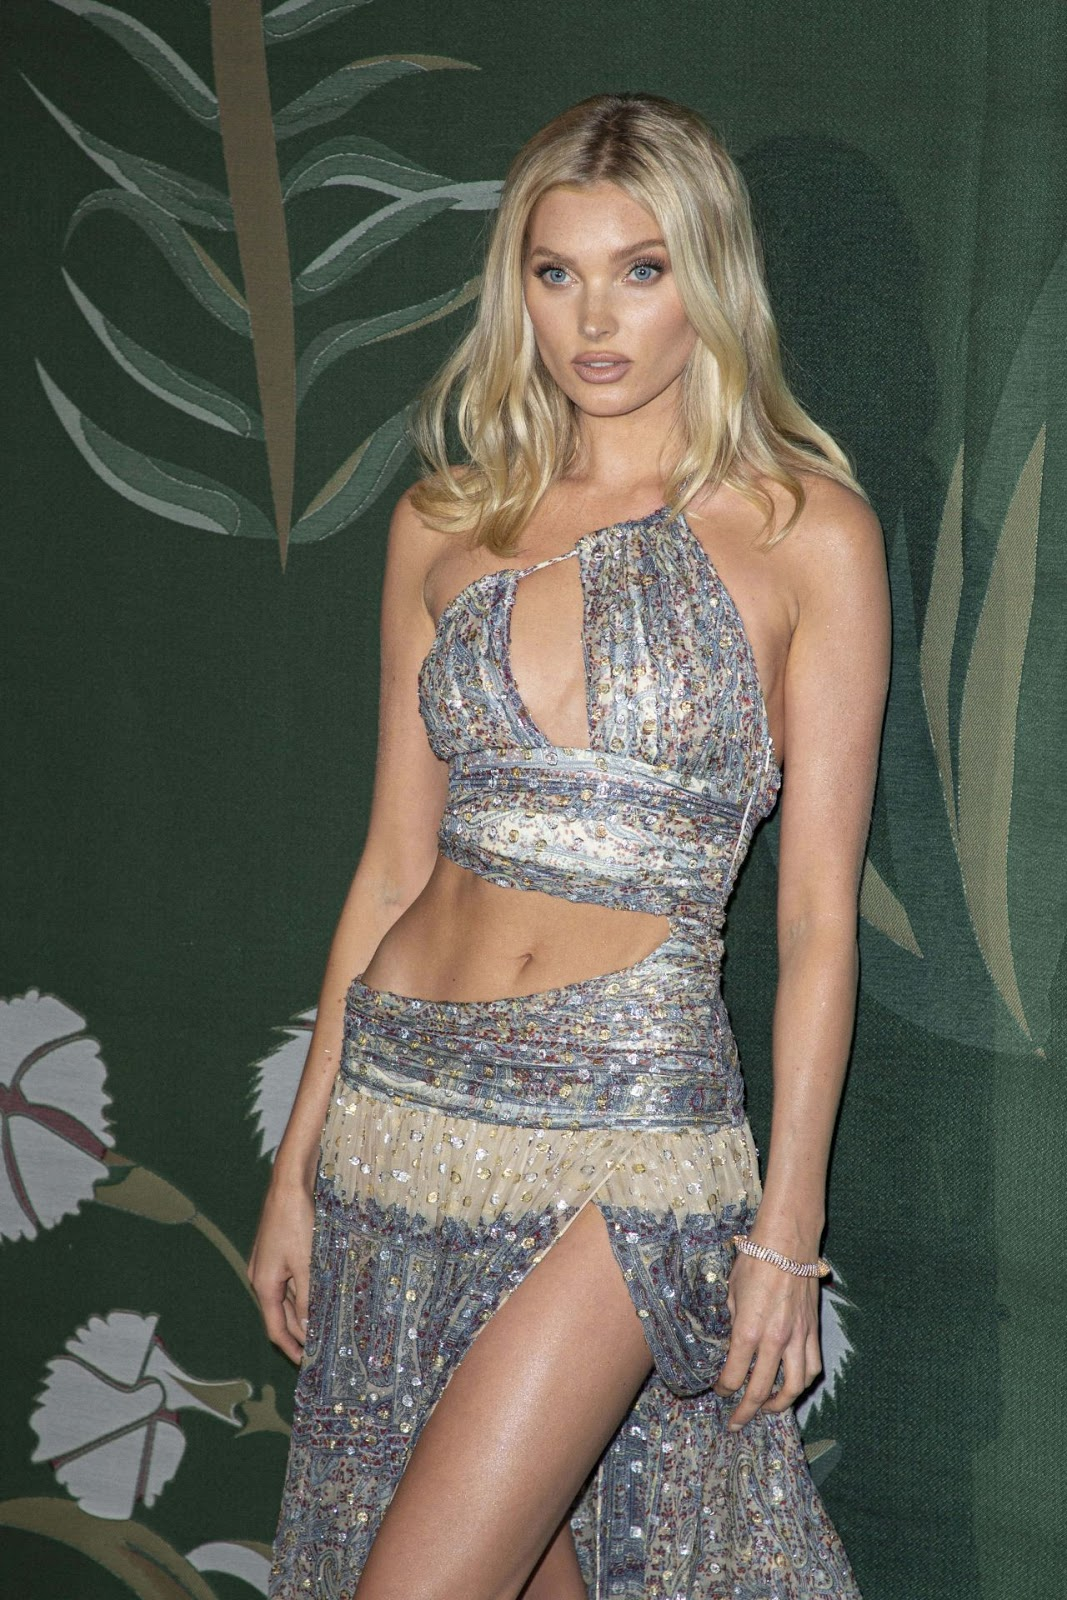 Elsa Hosk shows off skin at the 2019 Green Carpet Fashion Awards in Milan